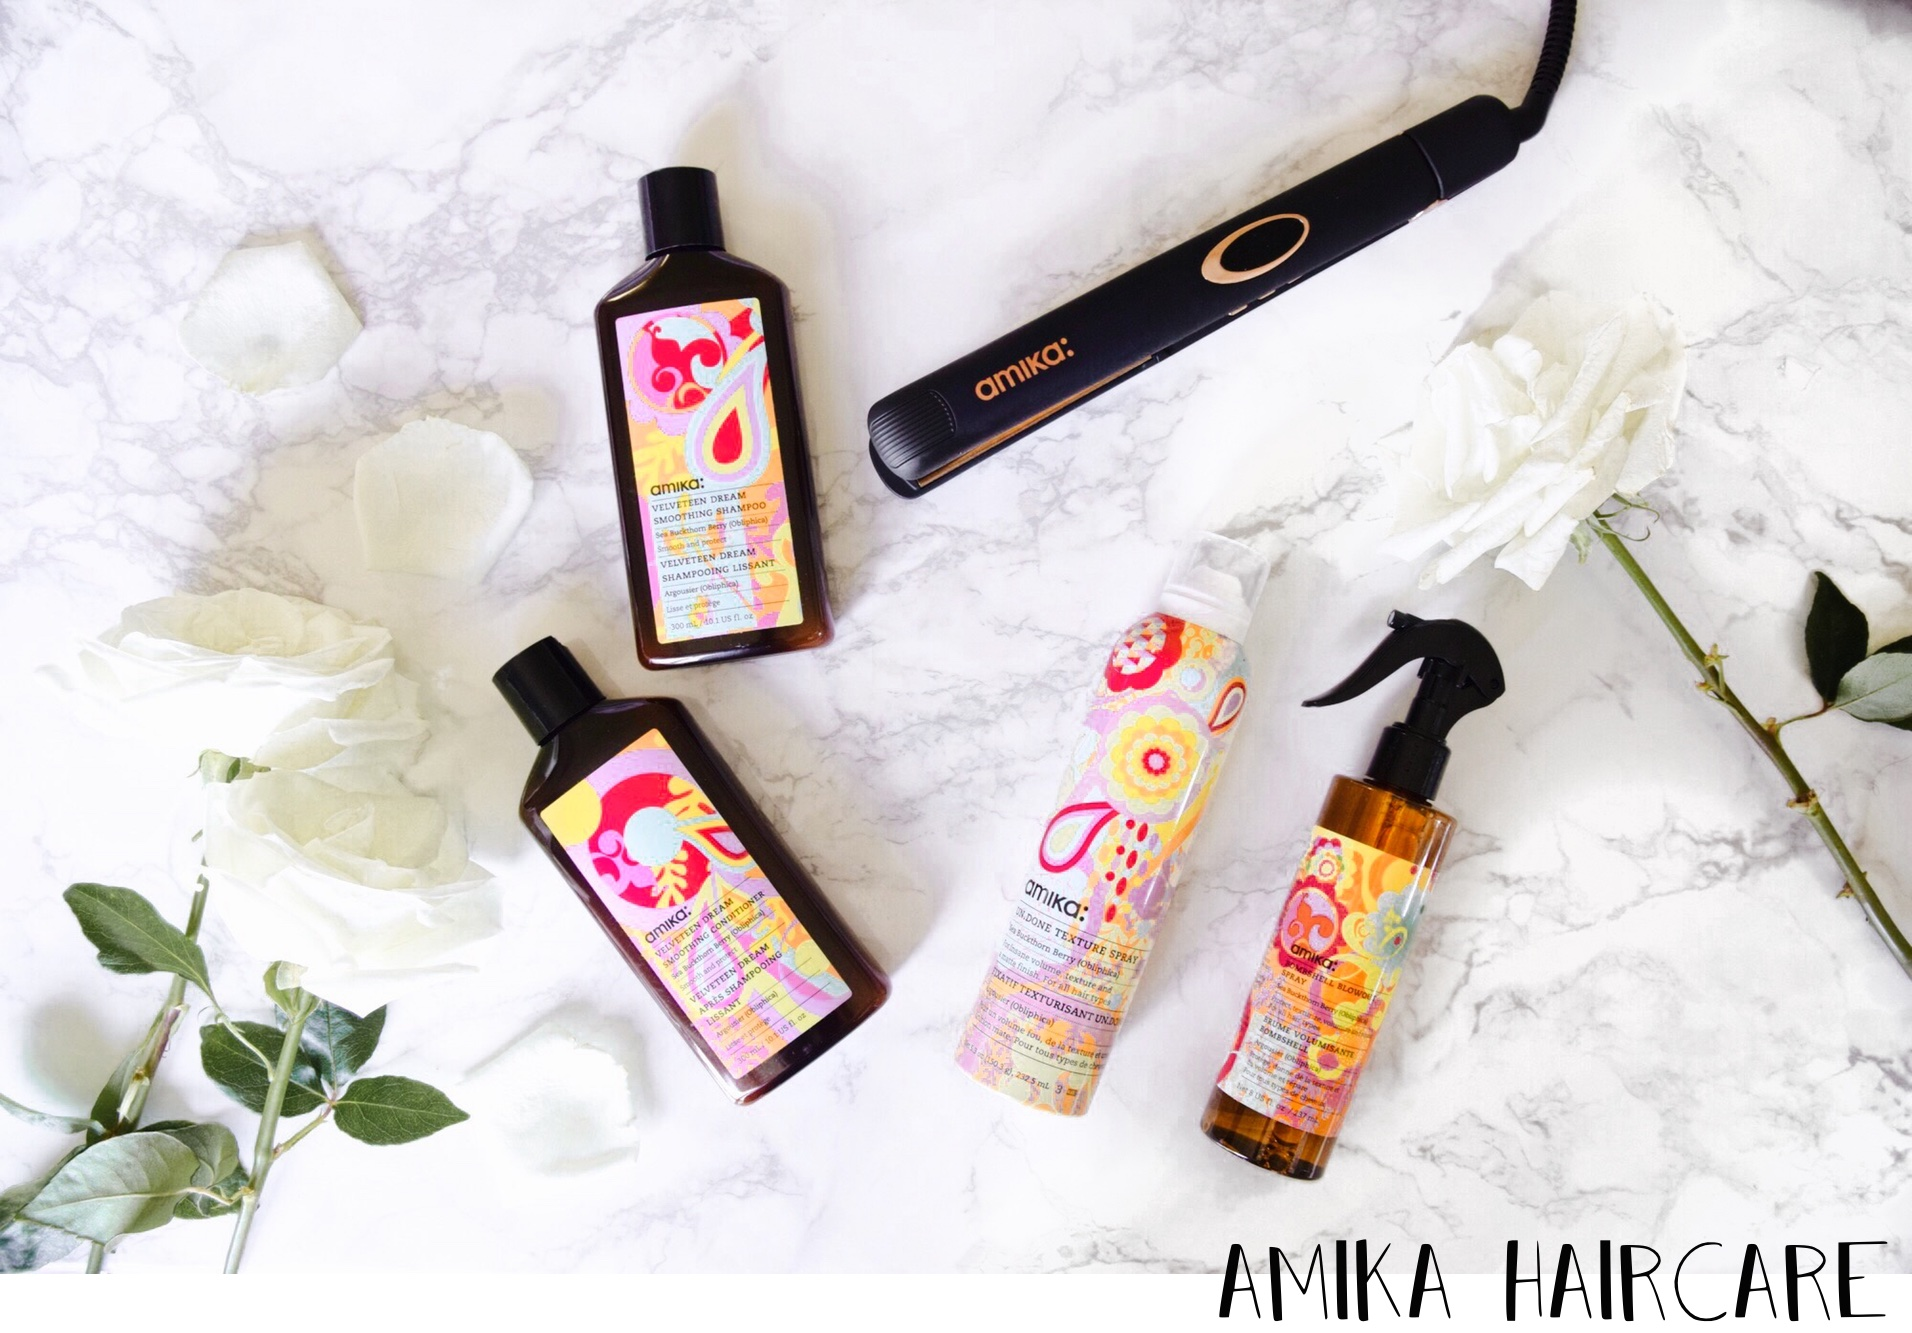 On My Vanity | New In // Amika Haircare // Los Angeles Fashion Blogger Daphne Blunt: To Style, With Love